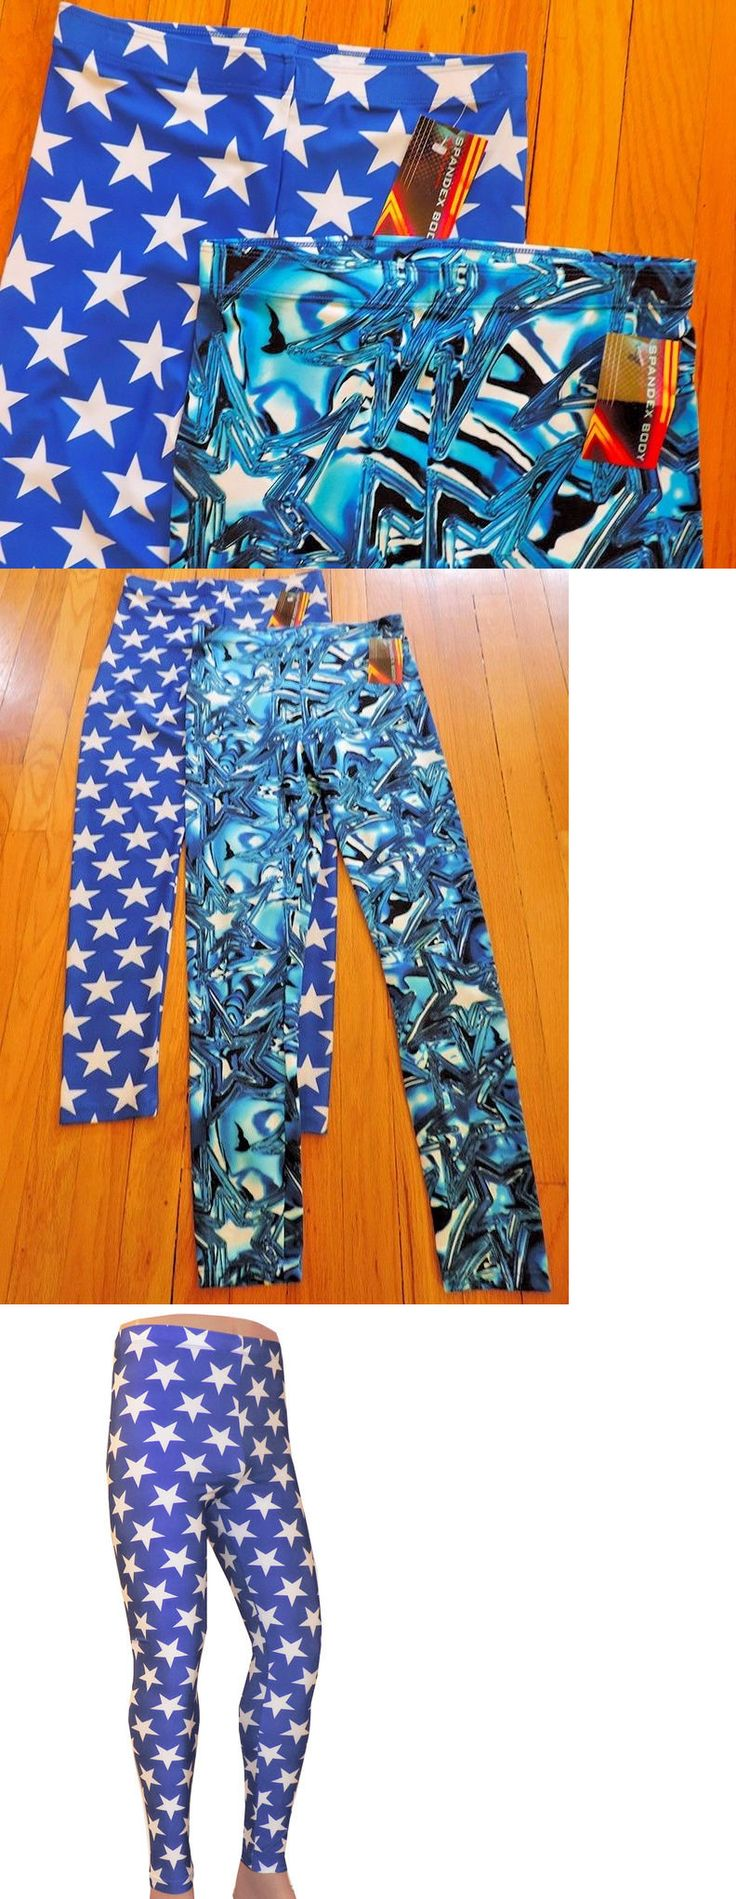 Clothing 79796: Lot 2 Medium Wrestling Tights Stars Blue Abstract Festival Edm Cos Play -> BUY IT NOW ONLY: $40 on eBay!